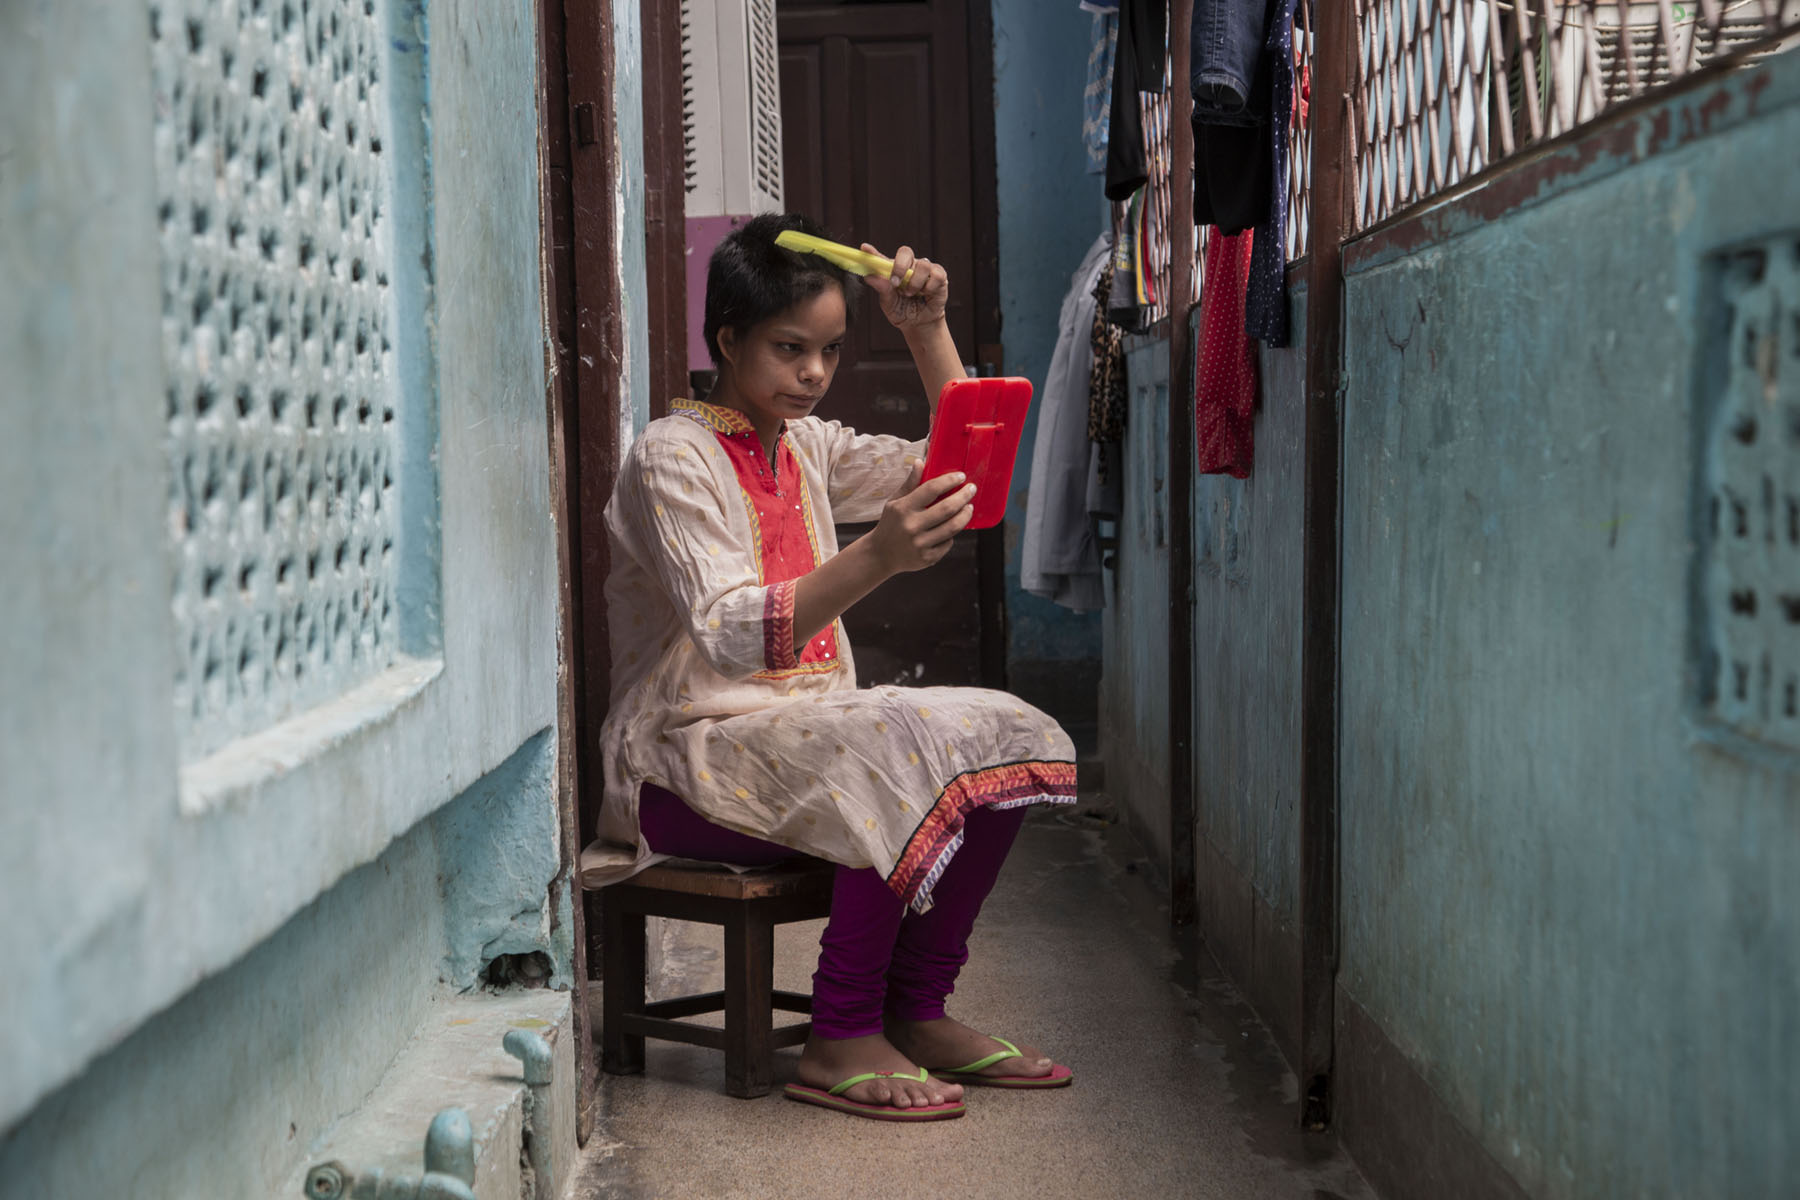 Israna is combing her hair while sitting on a wooden stool placed in a narrow corridor with sky blue walls. She wears a cream kameez and orange salwar, and orange slippers with light green straps. The three-fourth sleeve of the kameez is trimmed with an orange band, and the front of her kameez has an orange panel. She is looking into a hand mirror with an orange back, and holding a yellow comb against the top of her head.